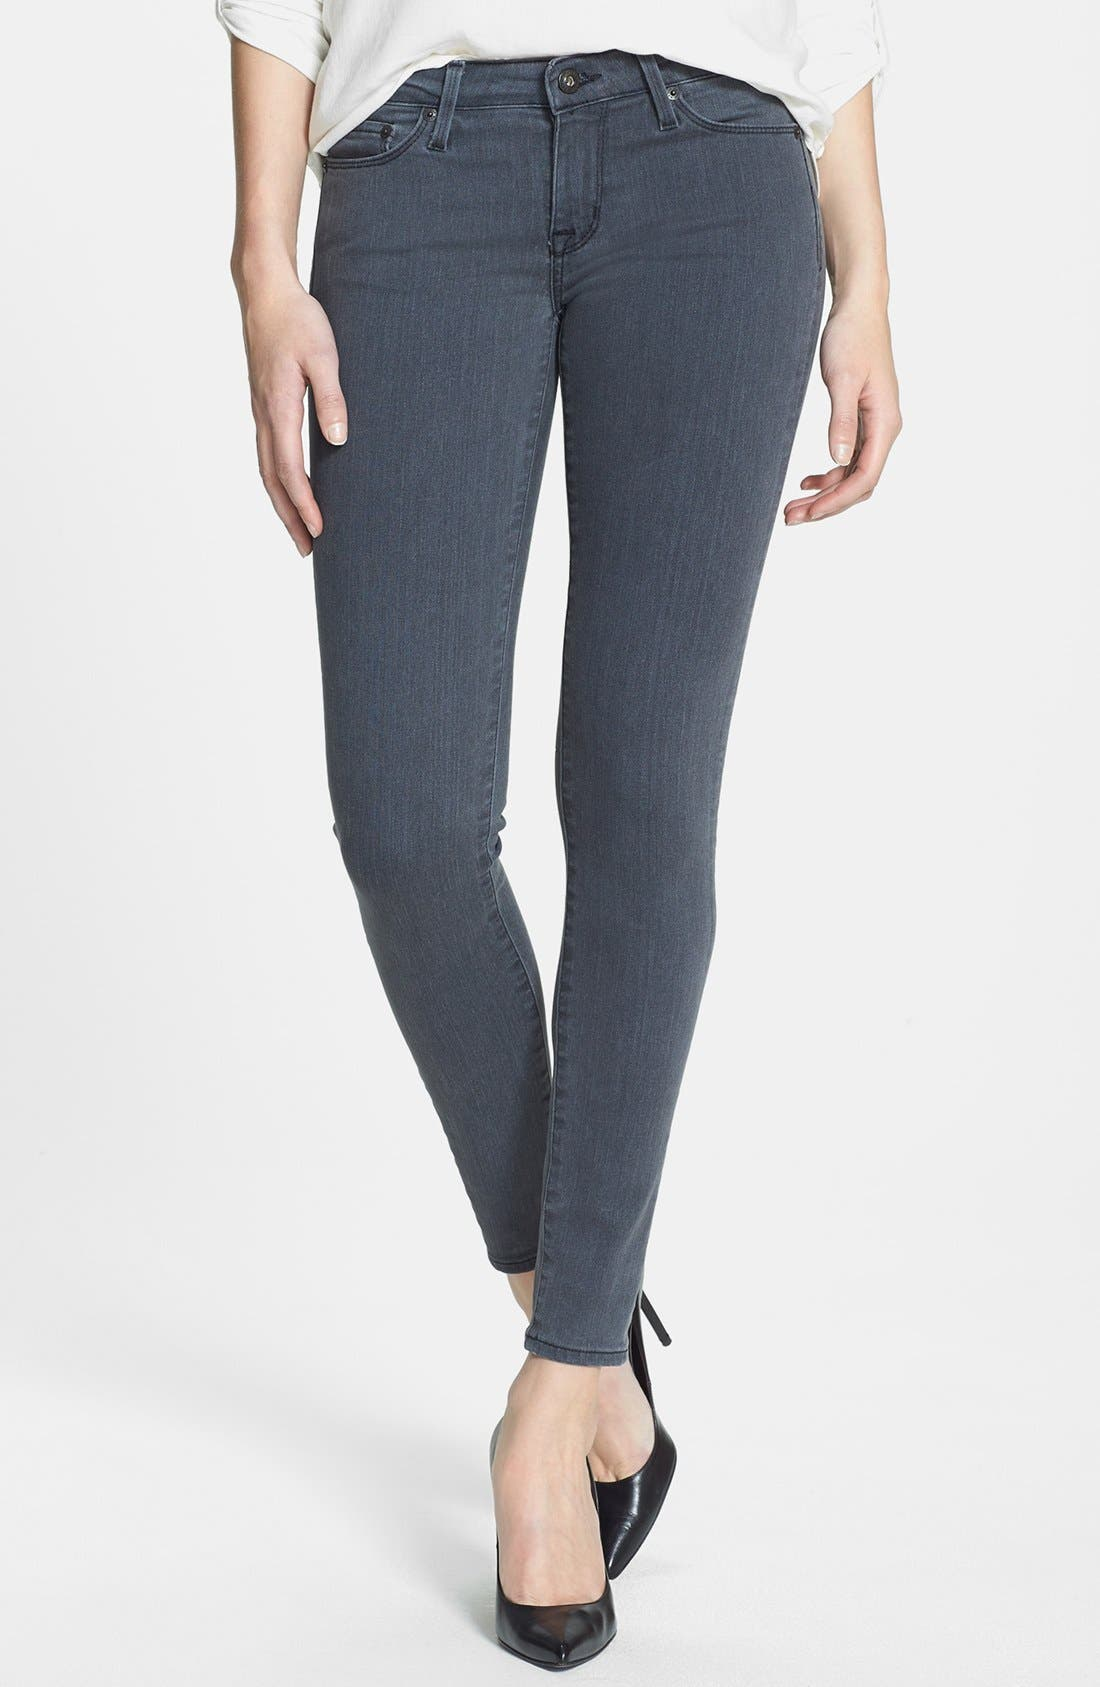 Alternate Image 1 Selected - Big Star 'Alex' Stretch Skinny Jeans (Liverpool) (Petite)